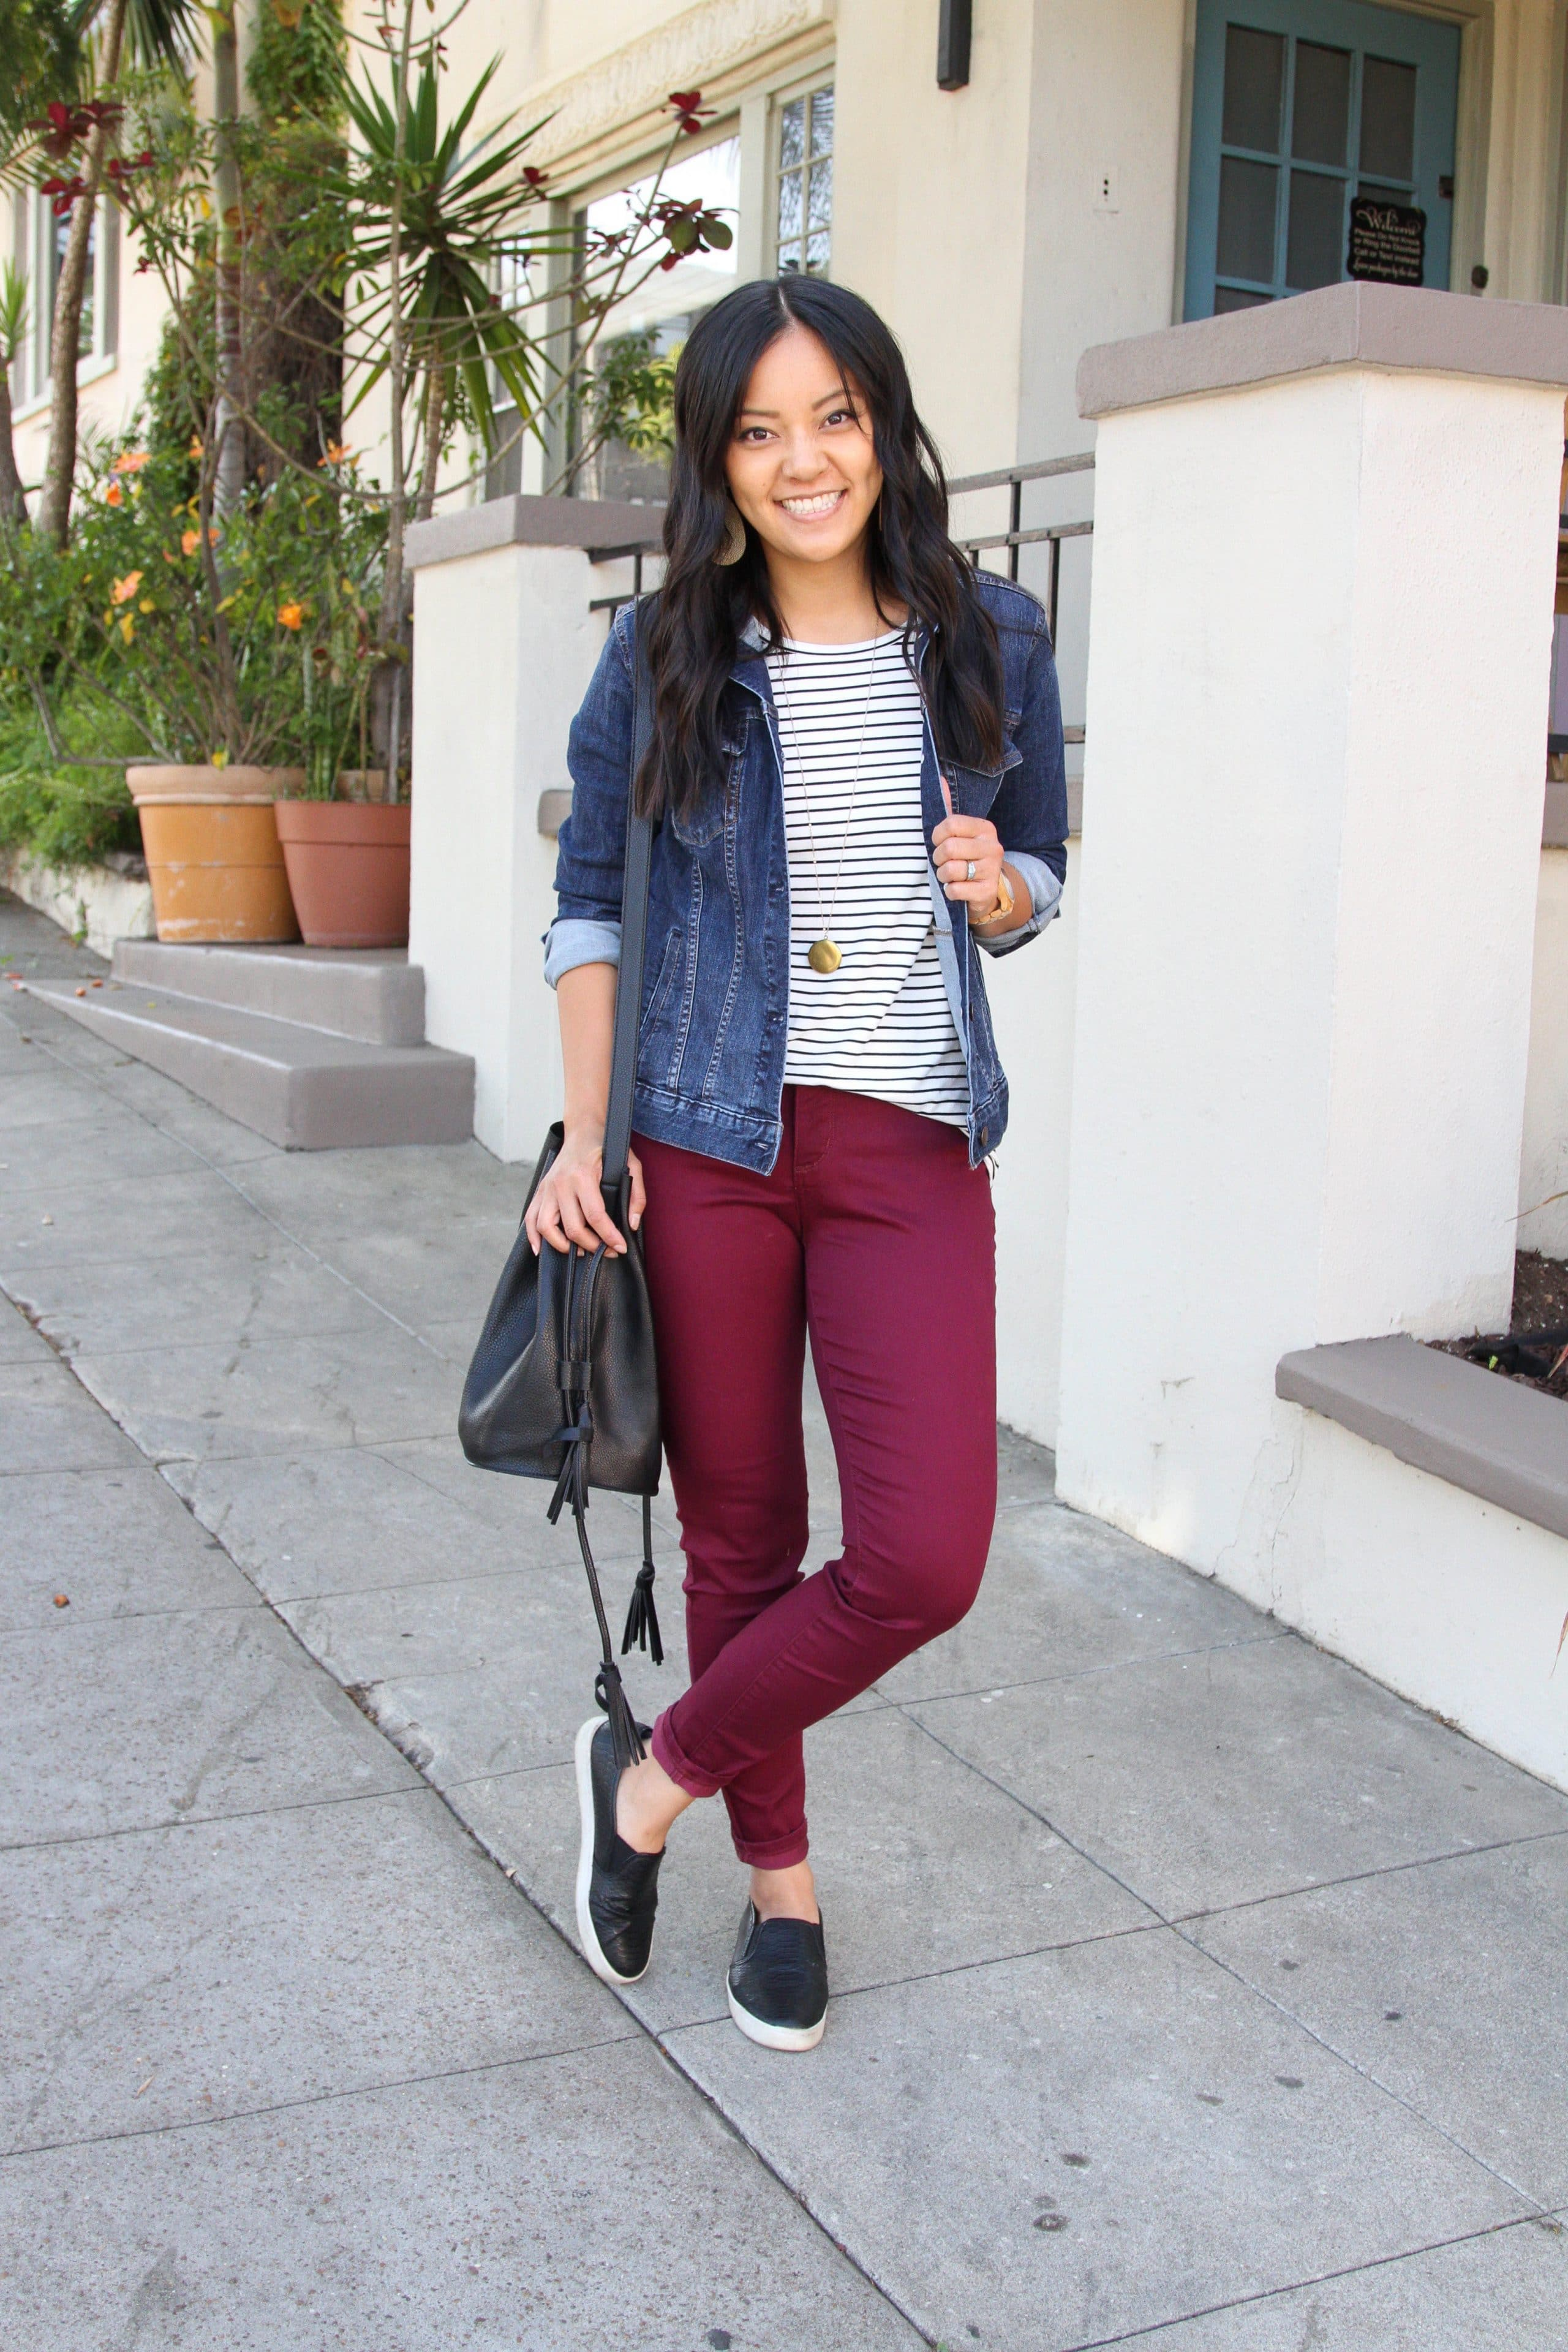 denim jacket + black and white striped tee + maroon pants + black slip on shoes + black purse